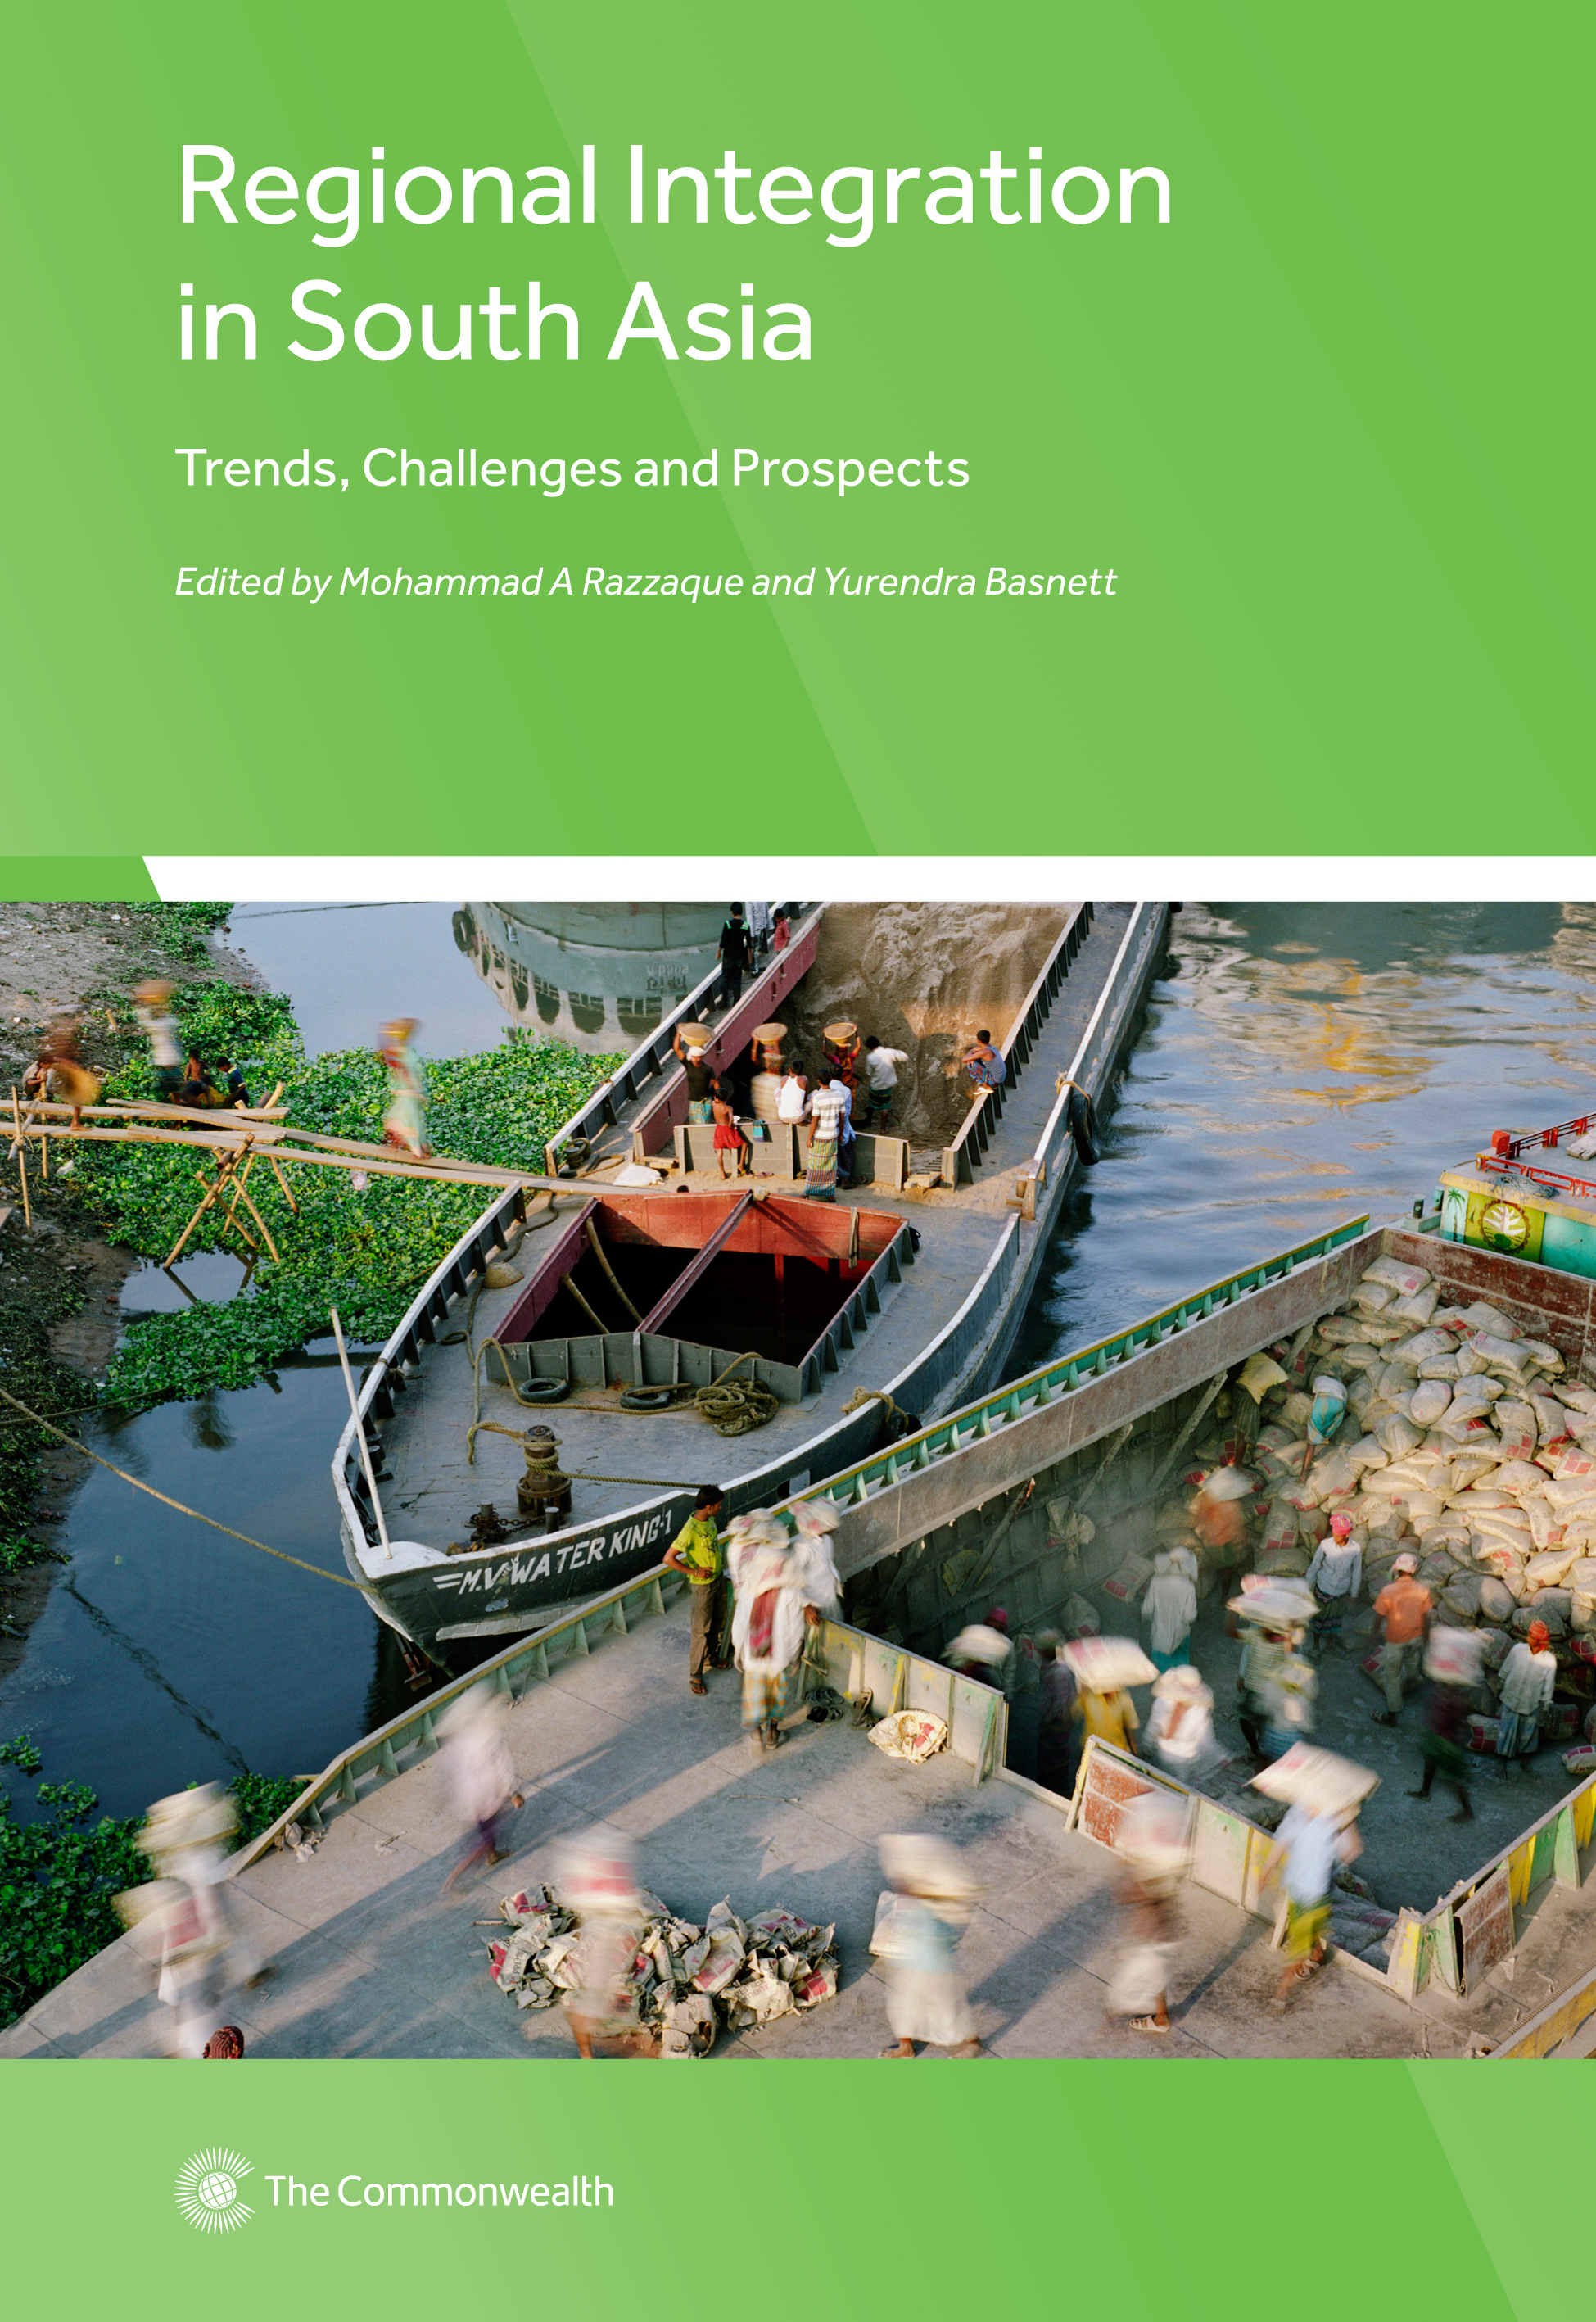 book tools and methods for pollution prevention